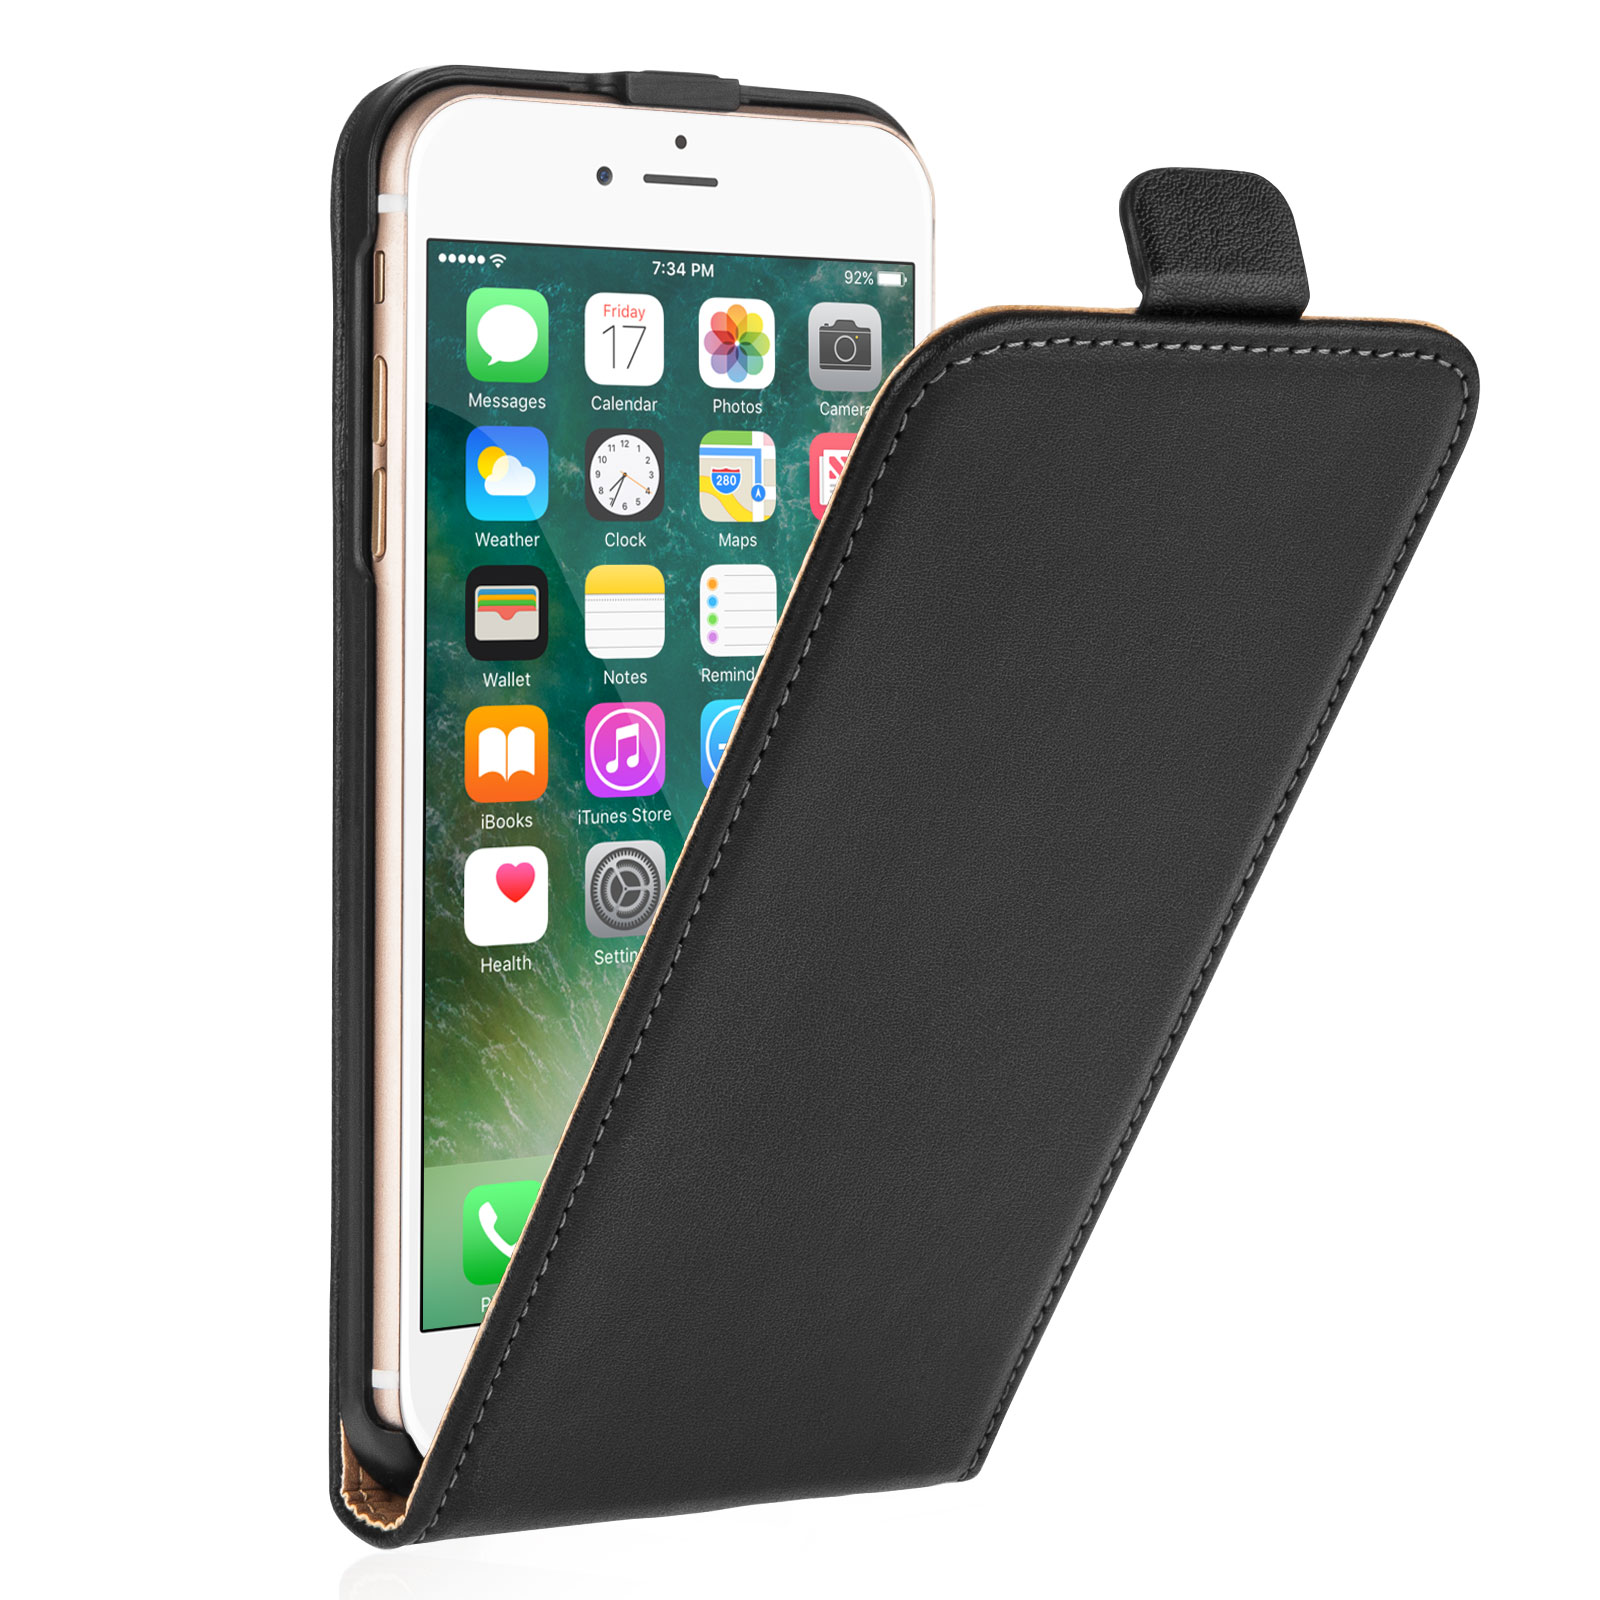 Caseflex  iPhone 7 Plus Real Leather Flip Case - Black